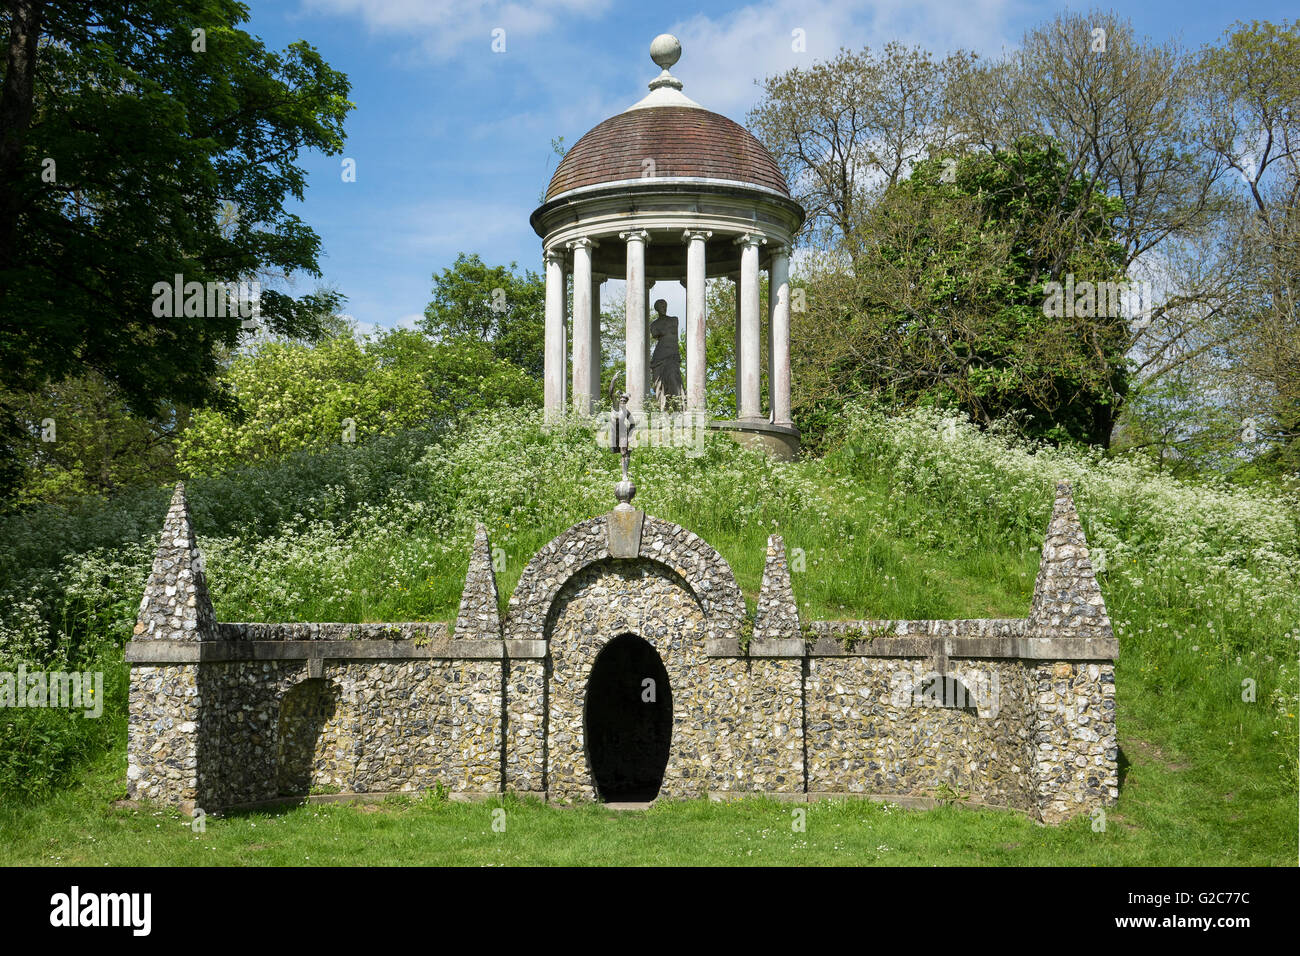 England, Buckinghamshire, West Wycombe park, Temple of Venus - Stock Image